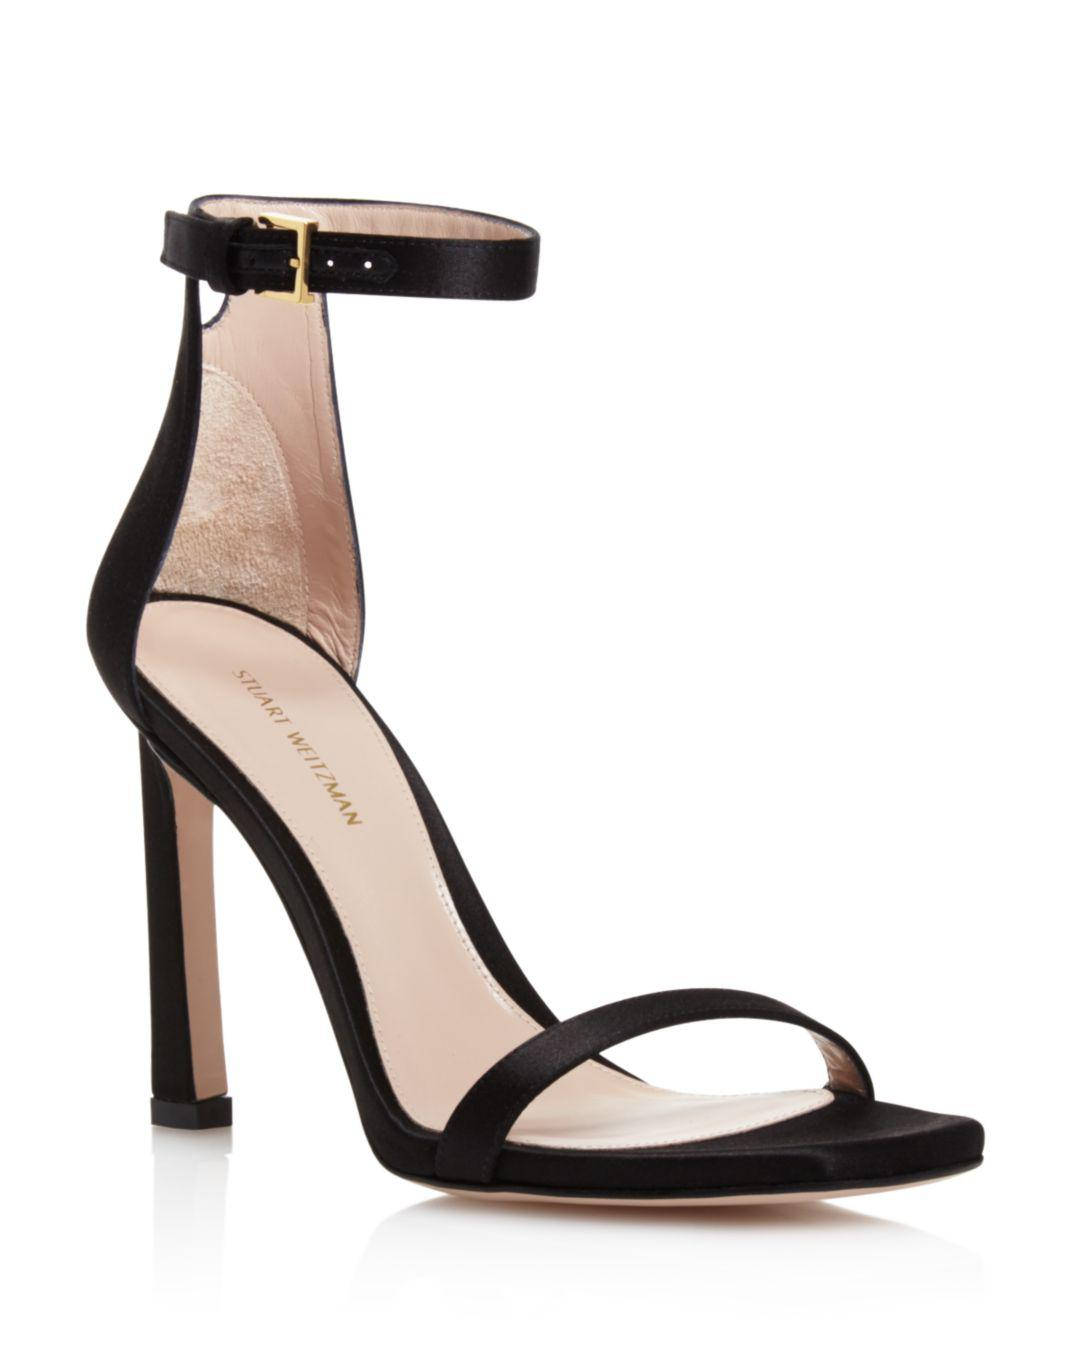 3ef0ef49687a Stuart Weitzman Women s 100fringesquarenudist Satin Embellished High-heel  Ankle Strap Sandals in Black - Lyst